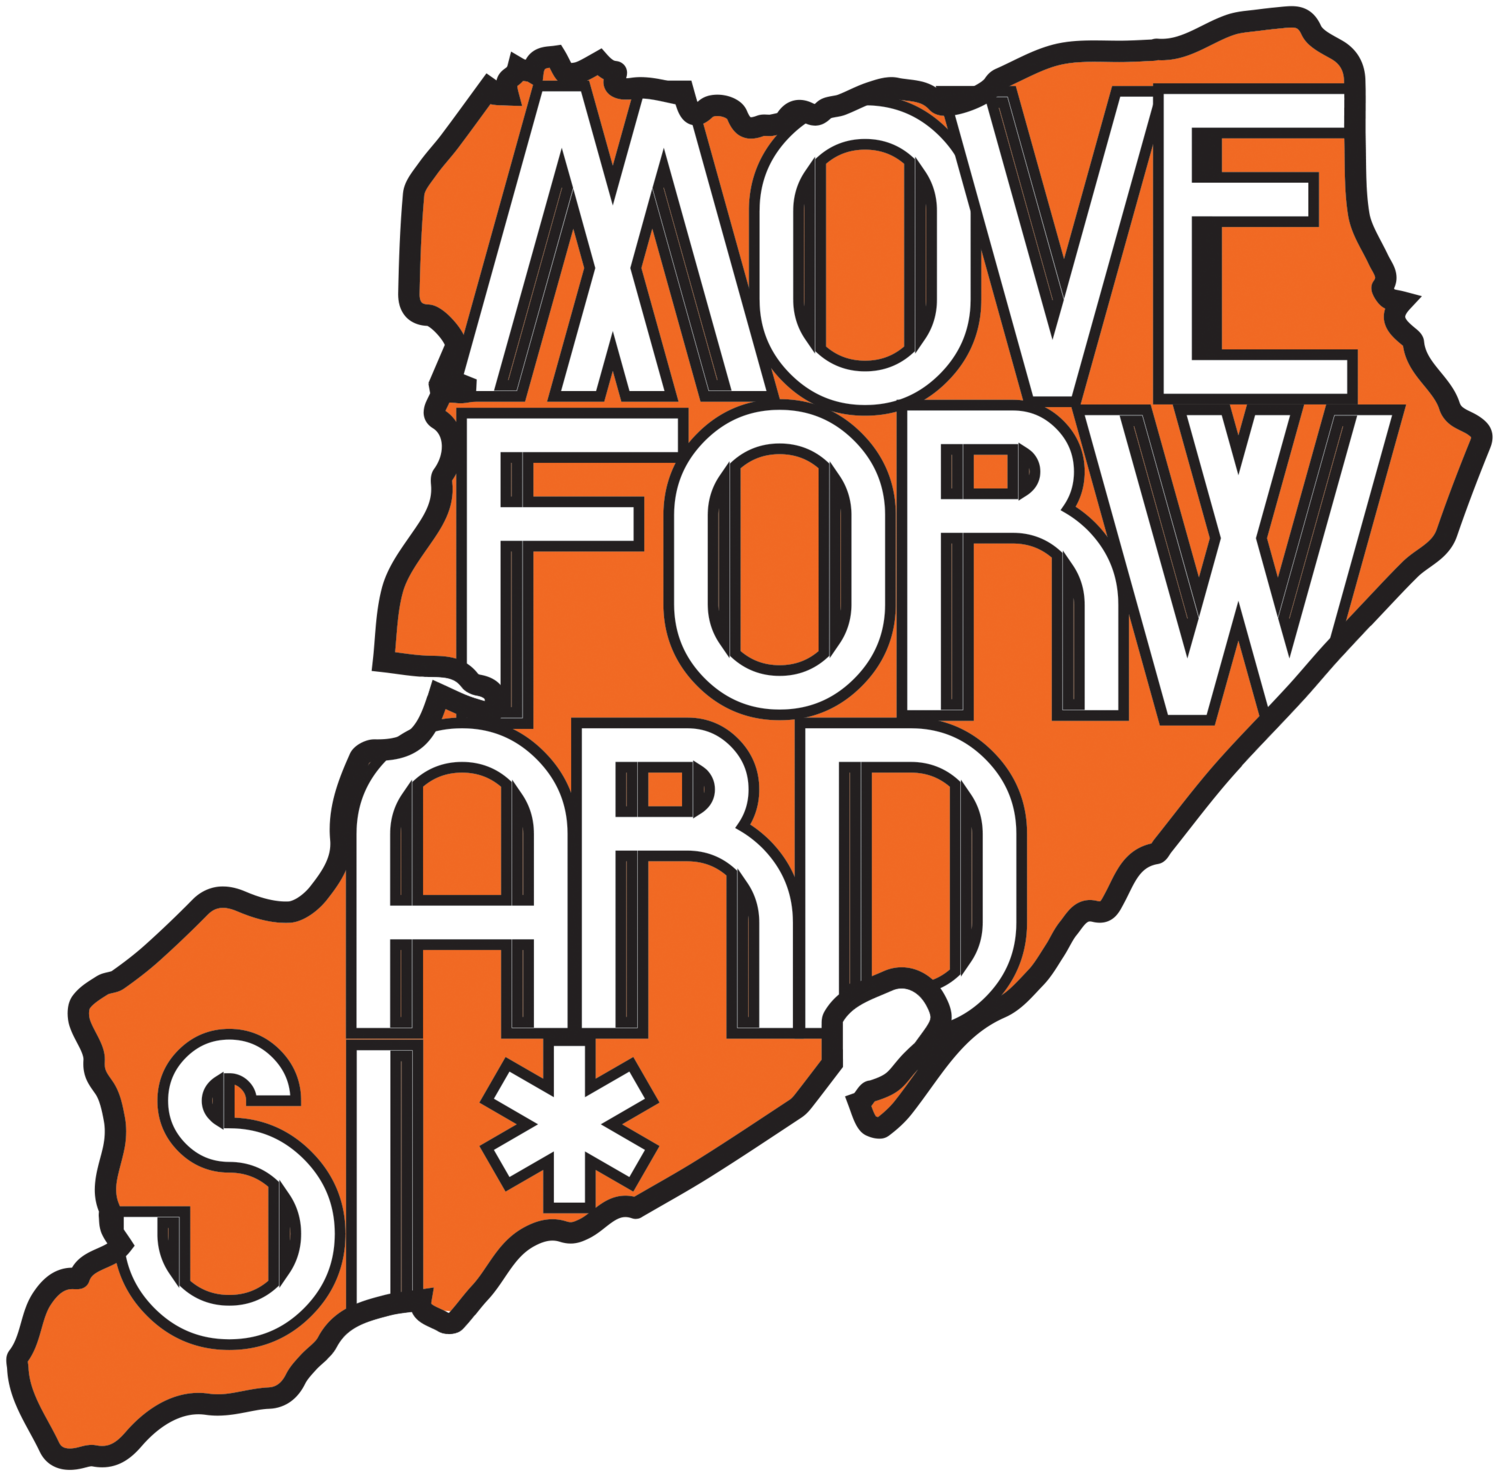 Move Forward Staten Island